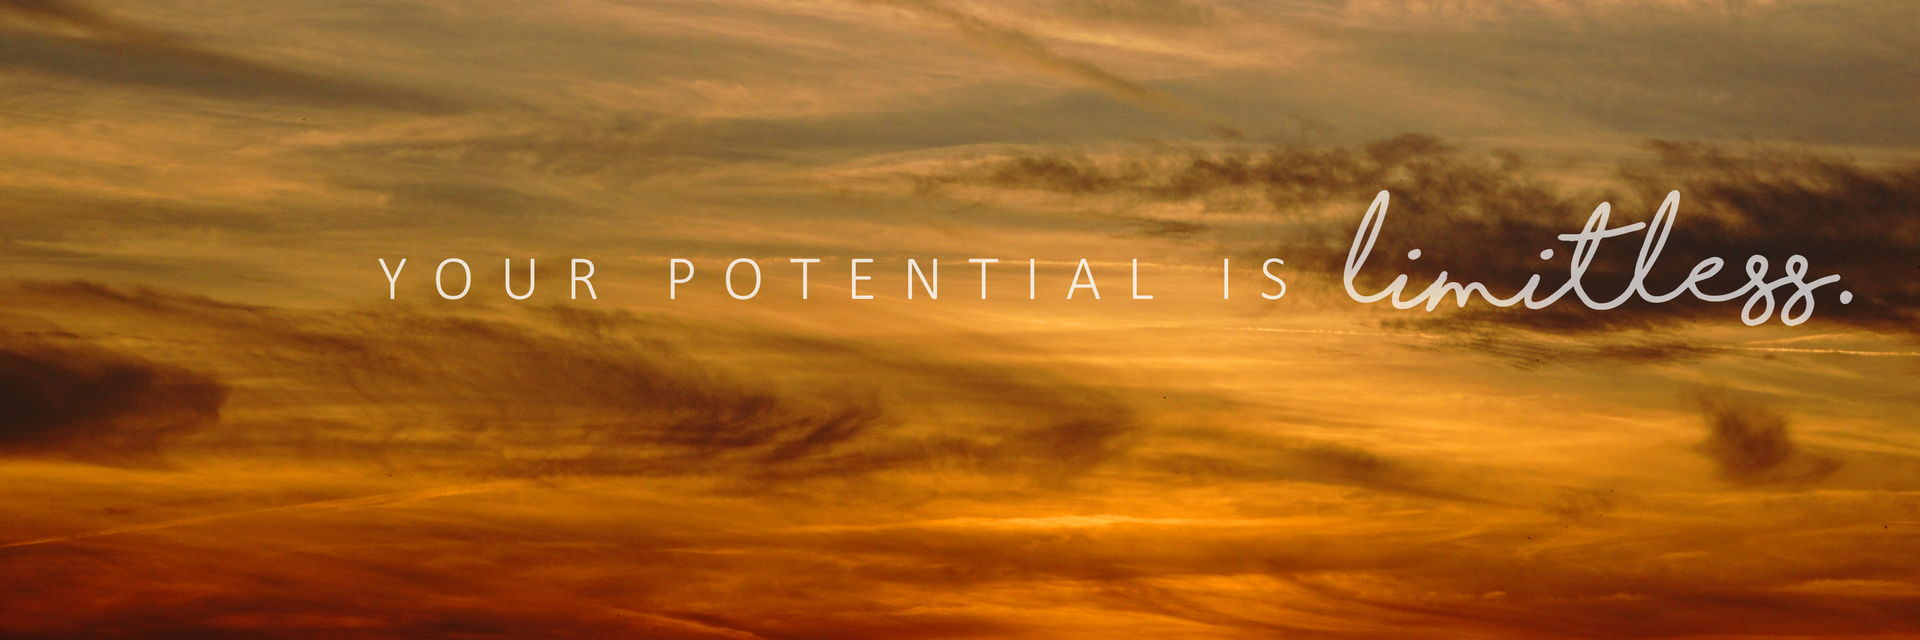 your potential is limitless.png